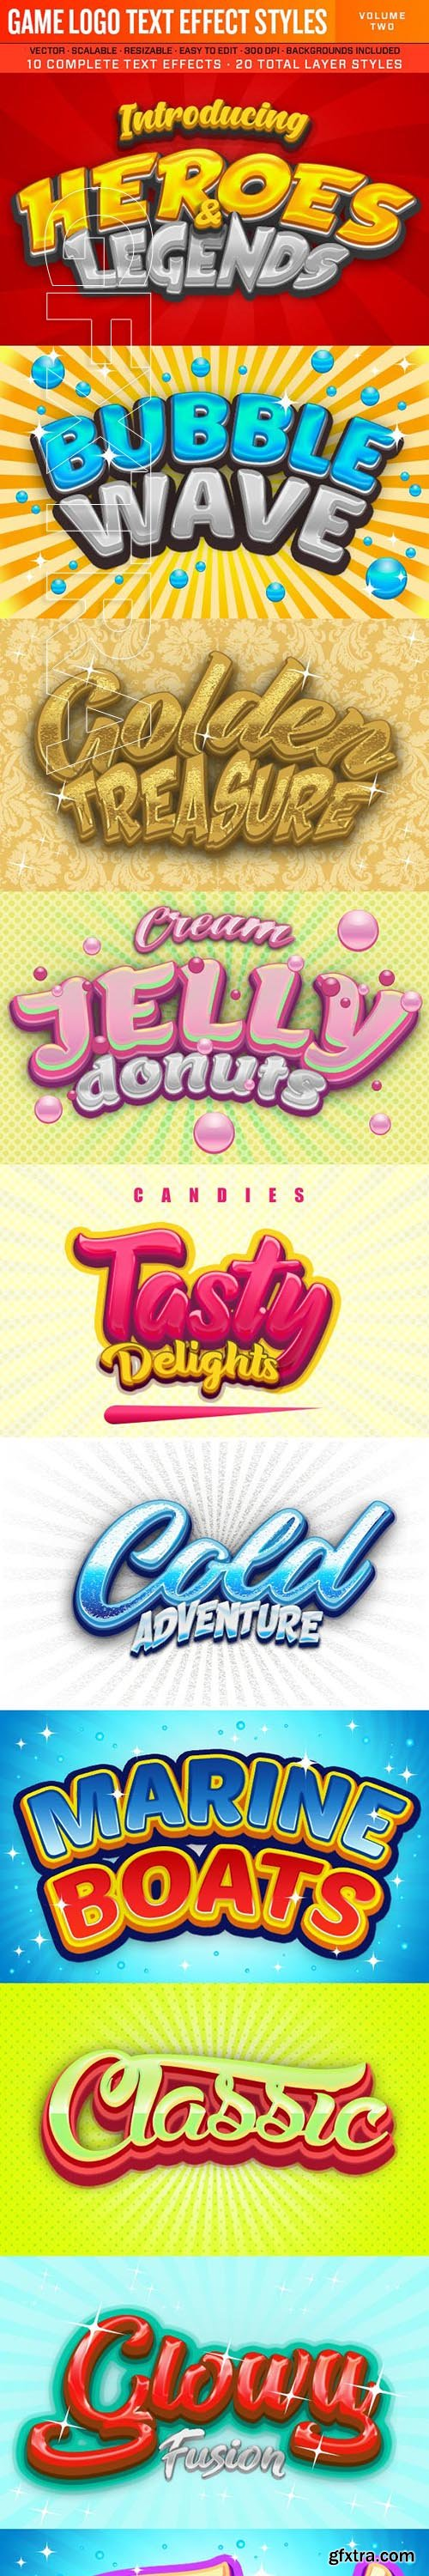 GraphicRiver - Game Logo Text Effect Styles 2 23685438